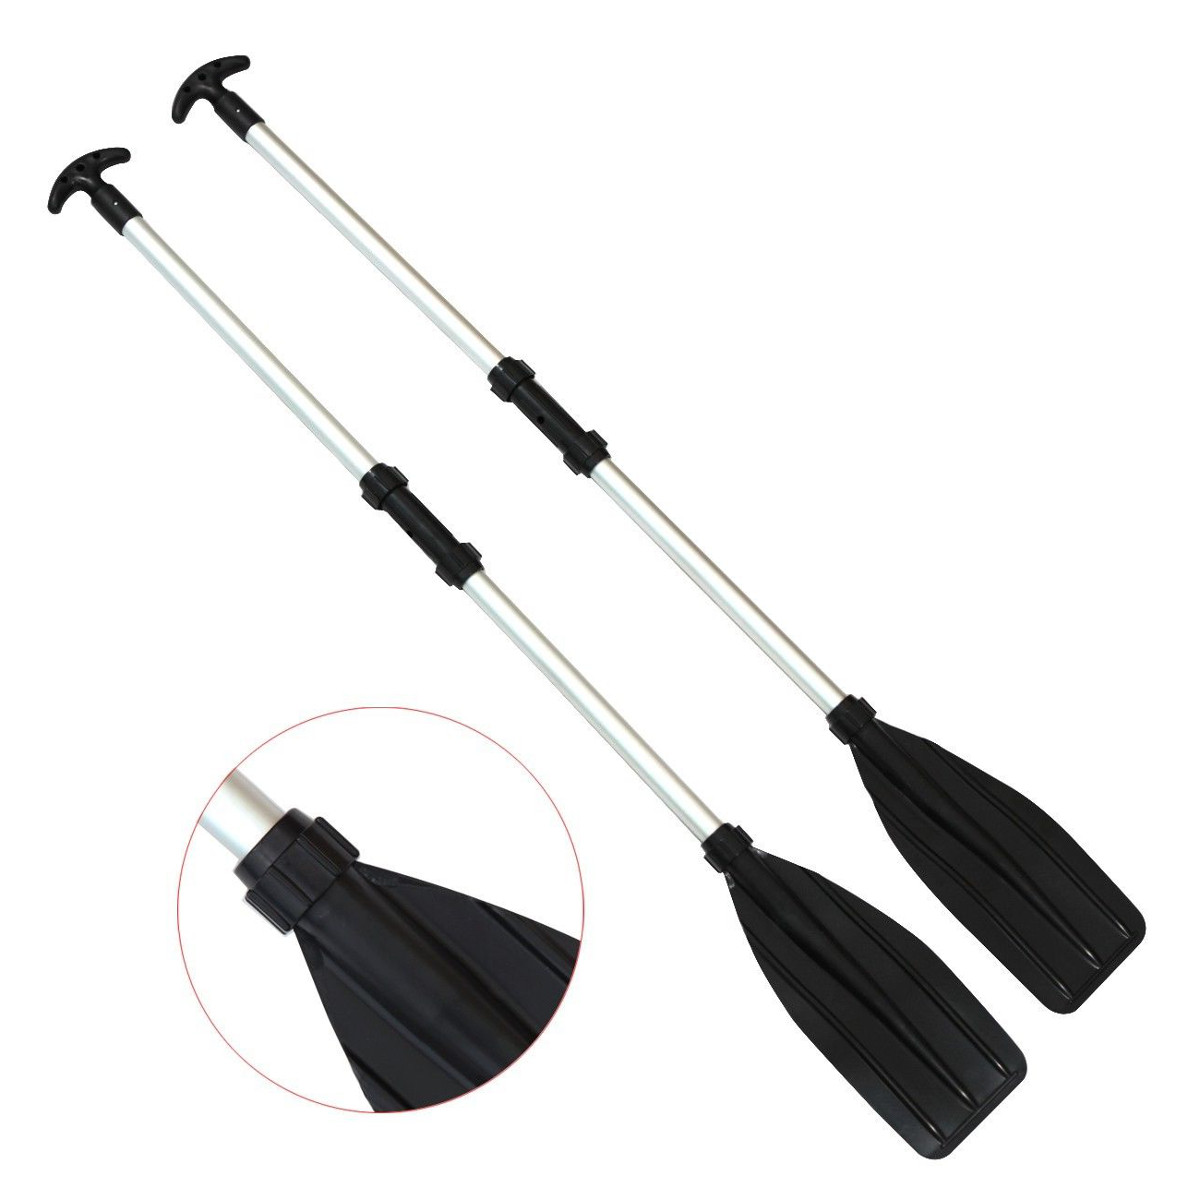 Detachable  Assemble strengthened aluminium Boat Oars paddle long oar for PVC inflatable boat fishing  kayak canoe paddle padDetachable  Assemble strengthened aluminium Boat Oars paddle long oar for PVC inflatable boat fishing  kayak canoe paddle pad